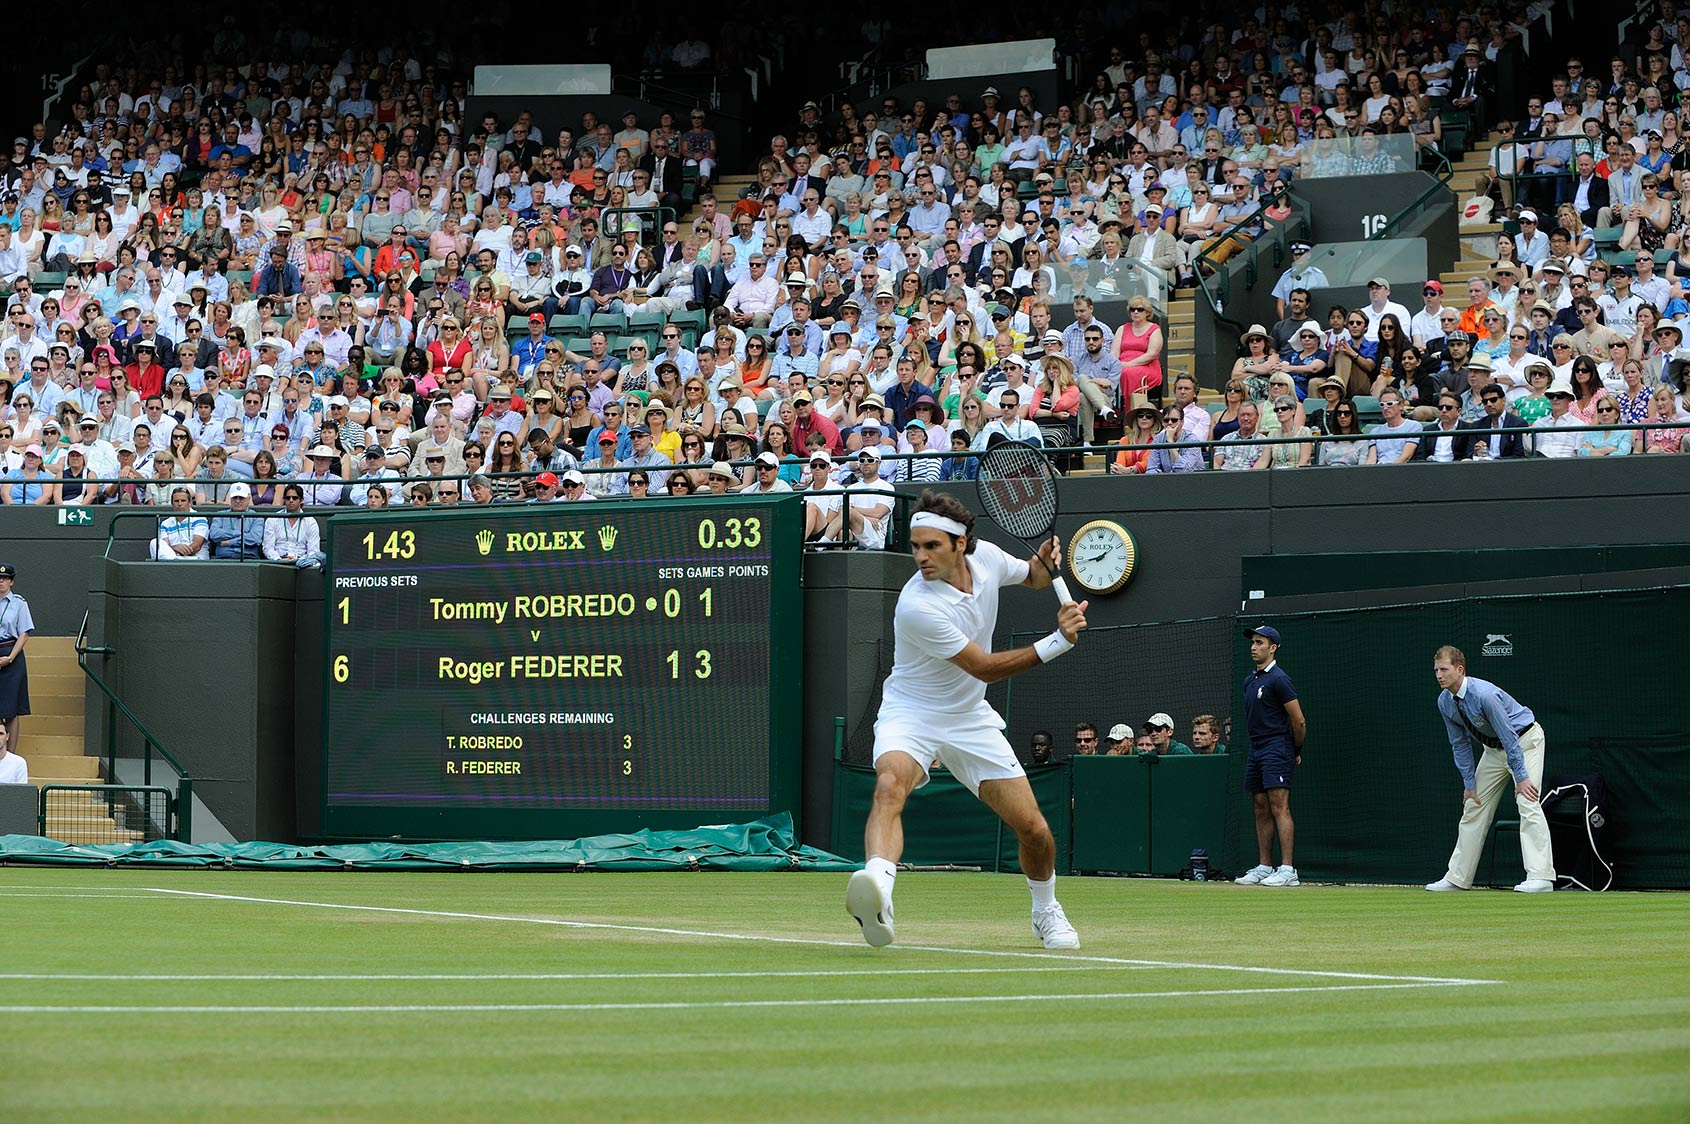 Rolex and Wimbledon: A Tradition of Excellence – Insight